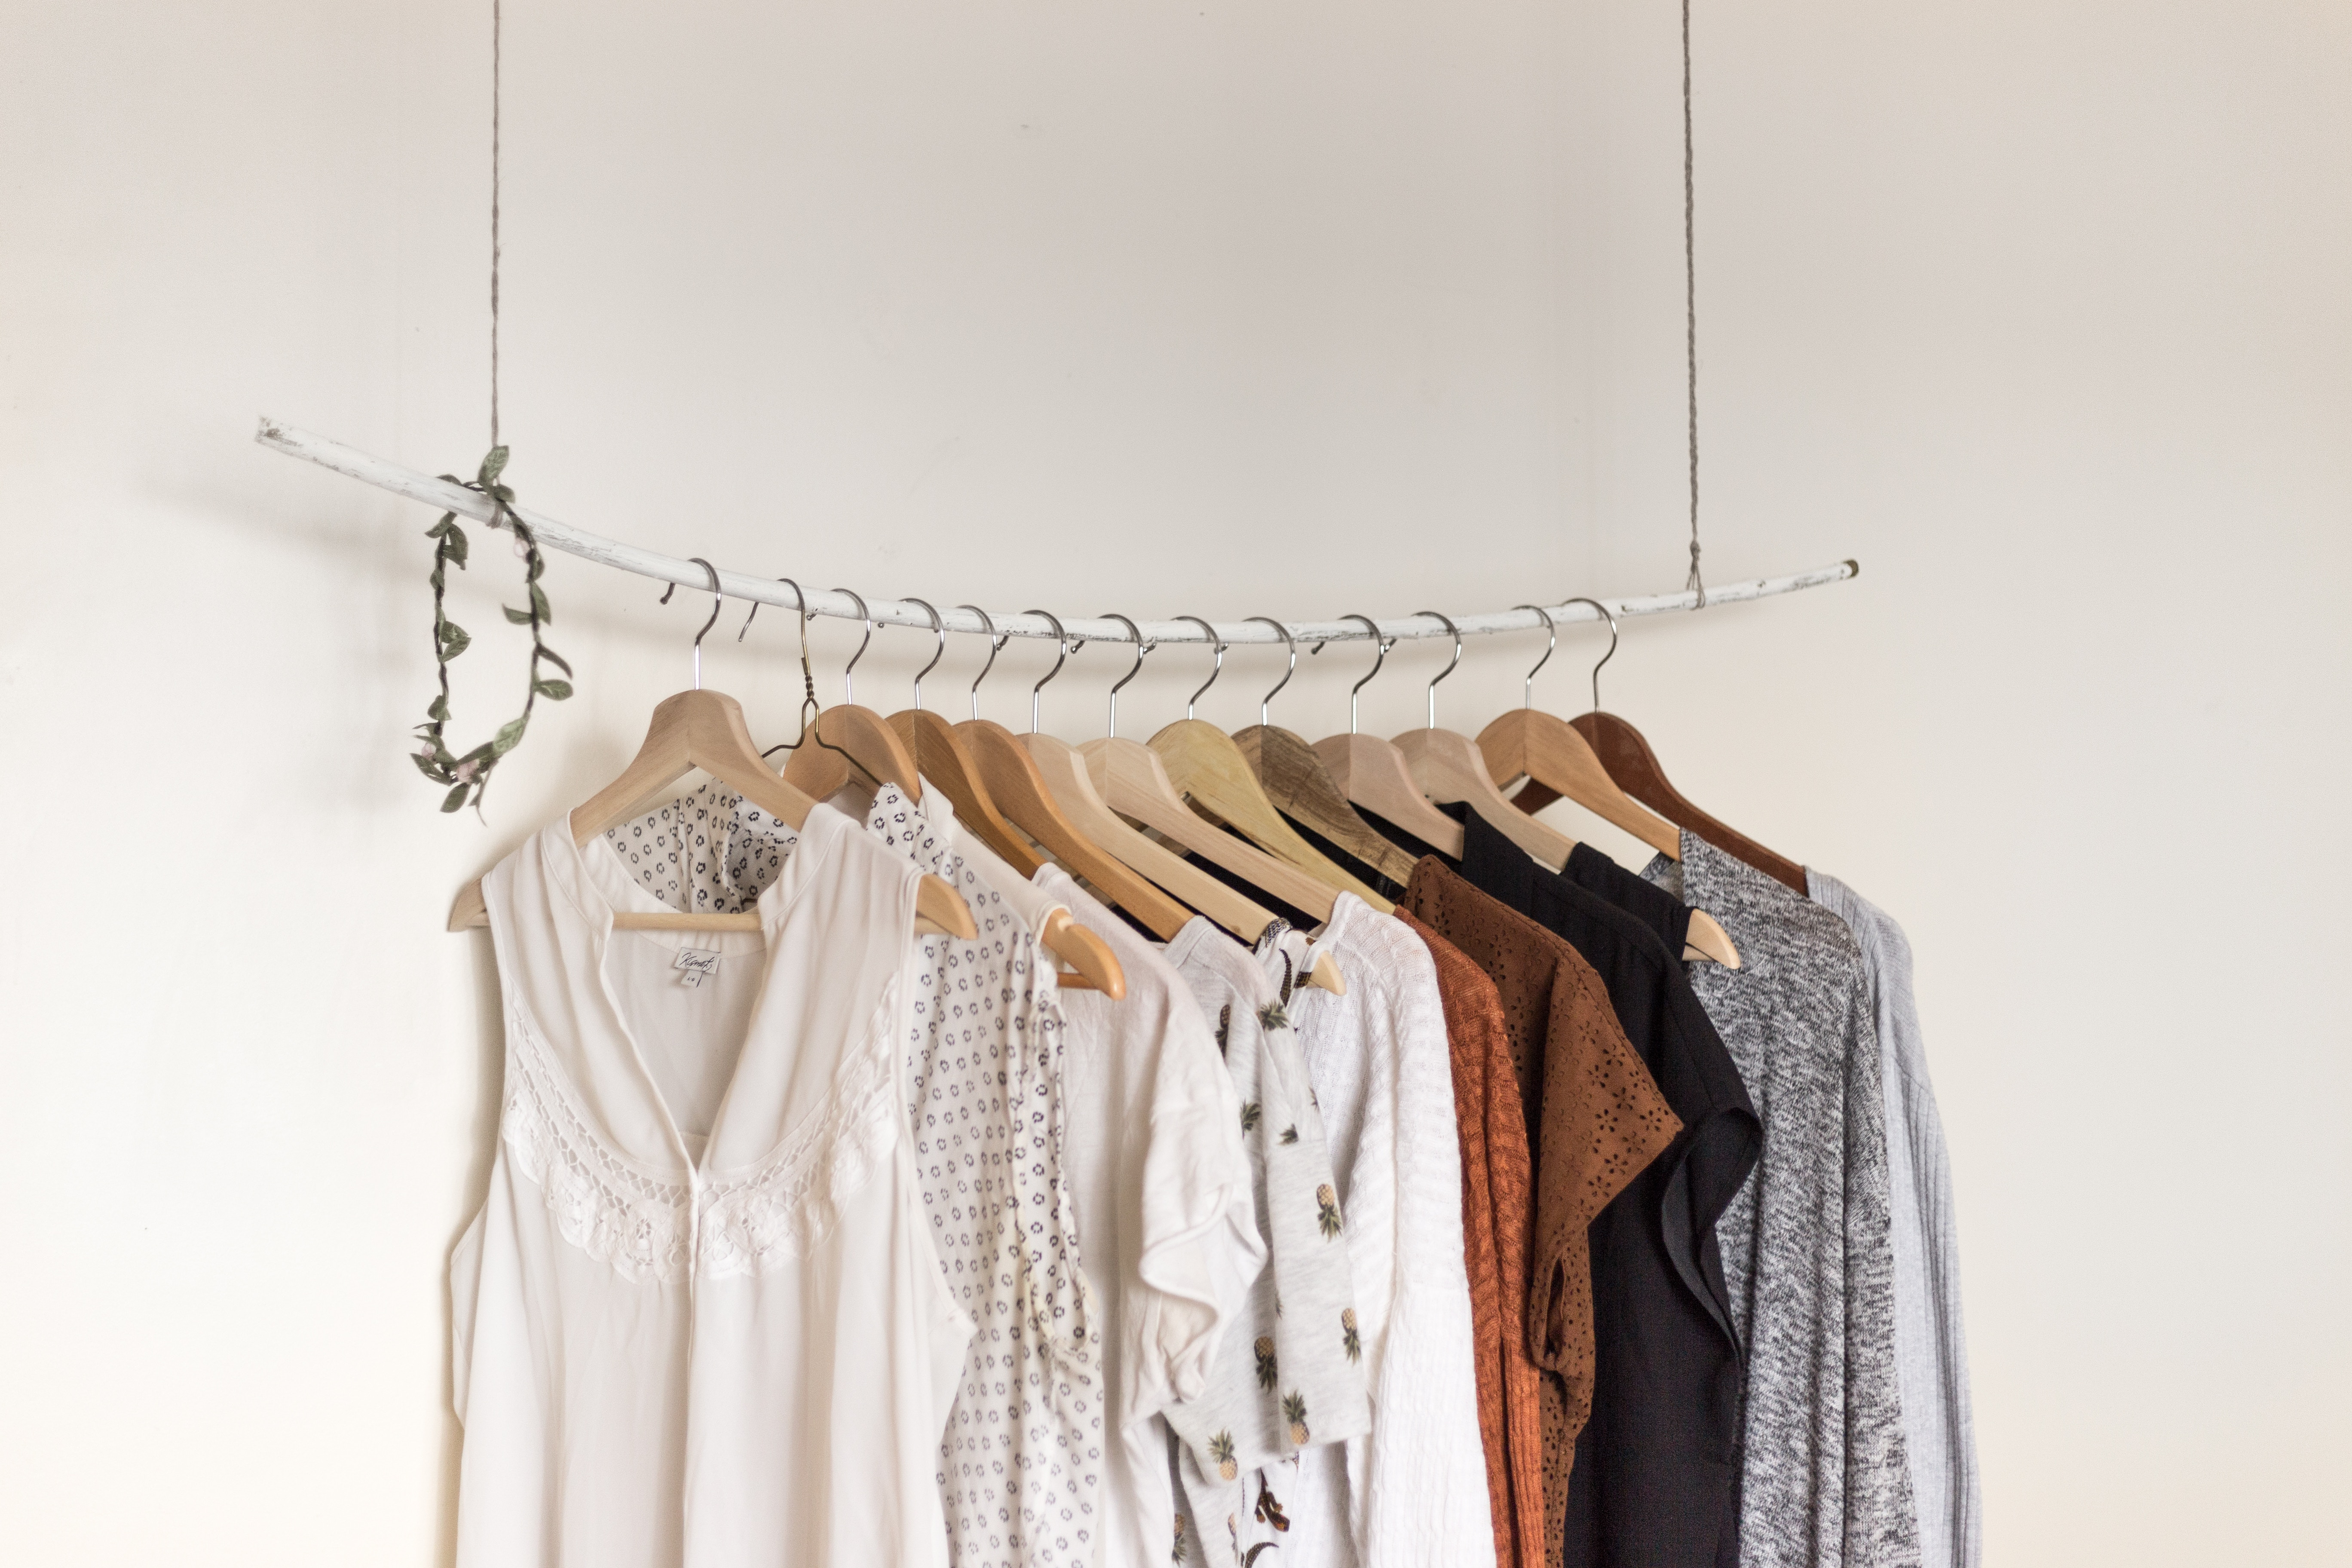 Organised clothes